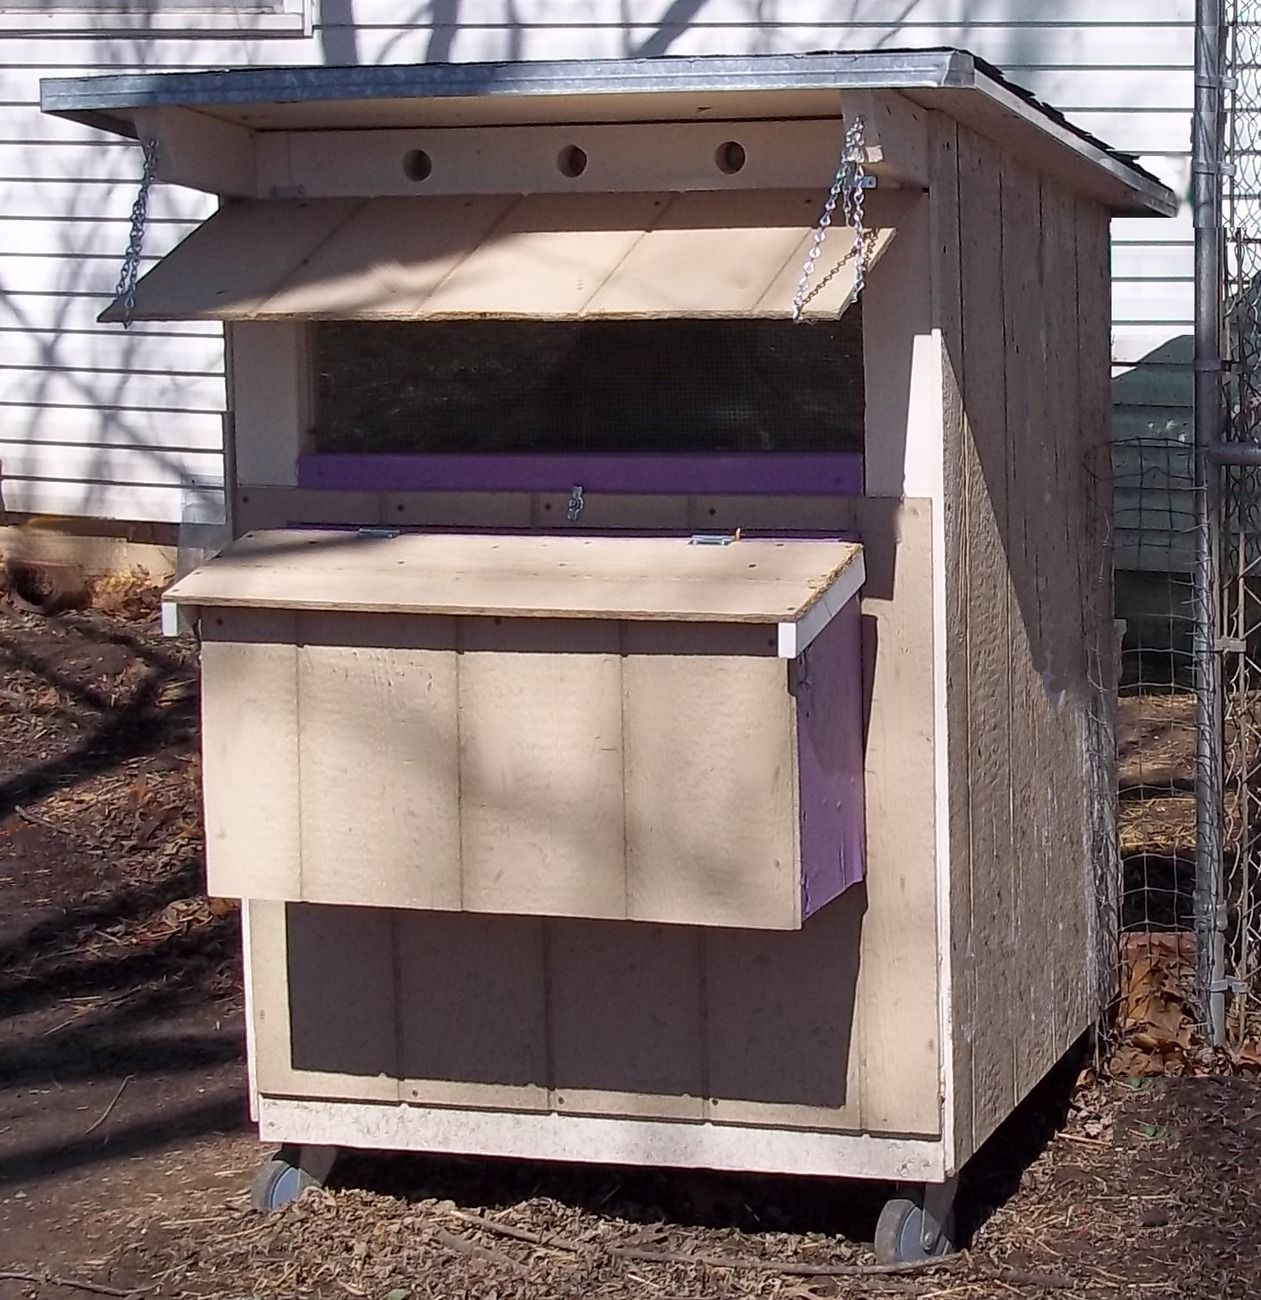 low cost backyard mini chicken coop building plans book other